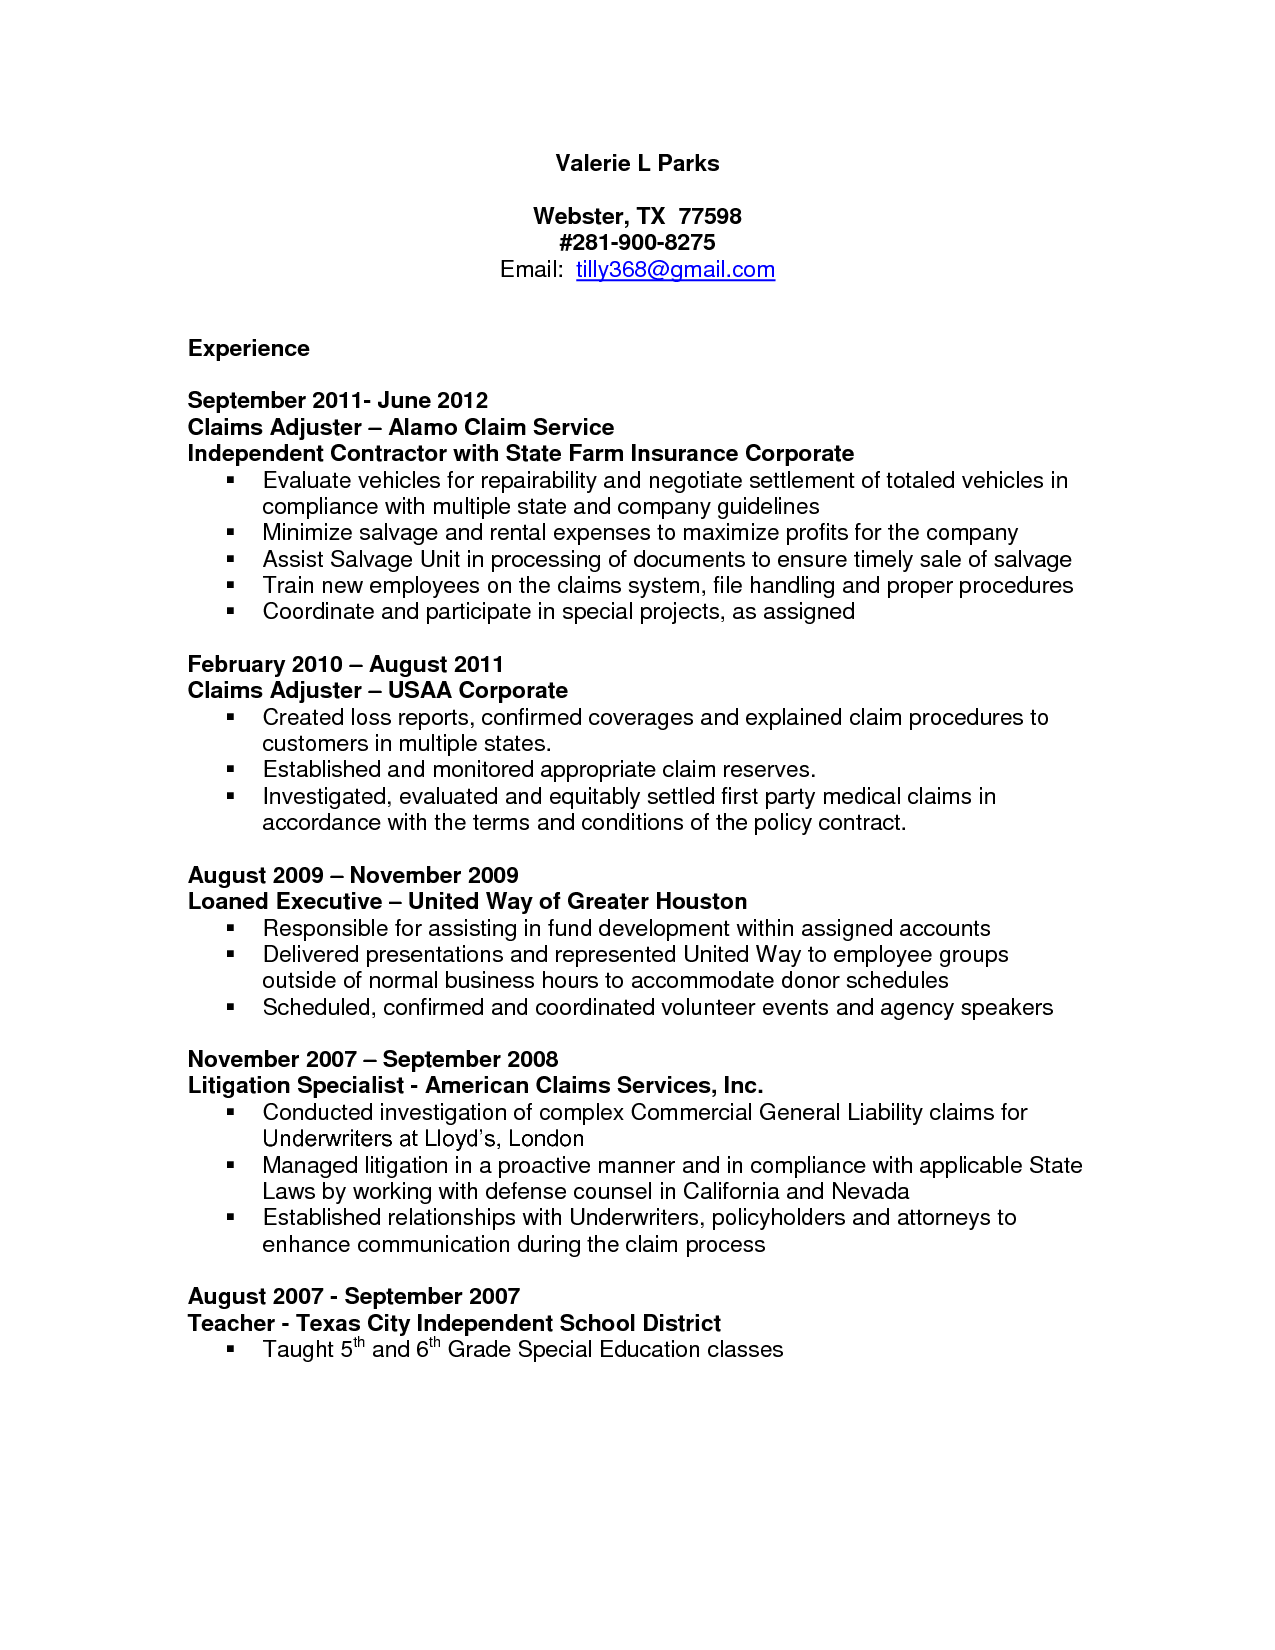 Claims Adjuster Resume Sample Resumesdesign Resume Sample